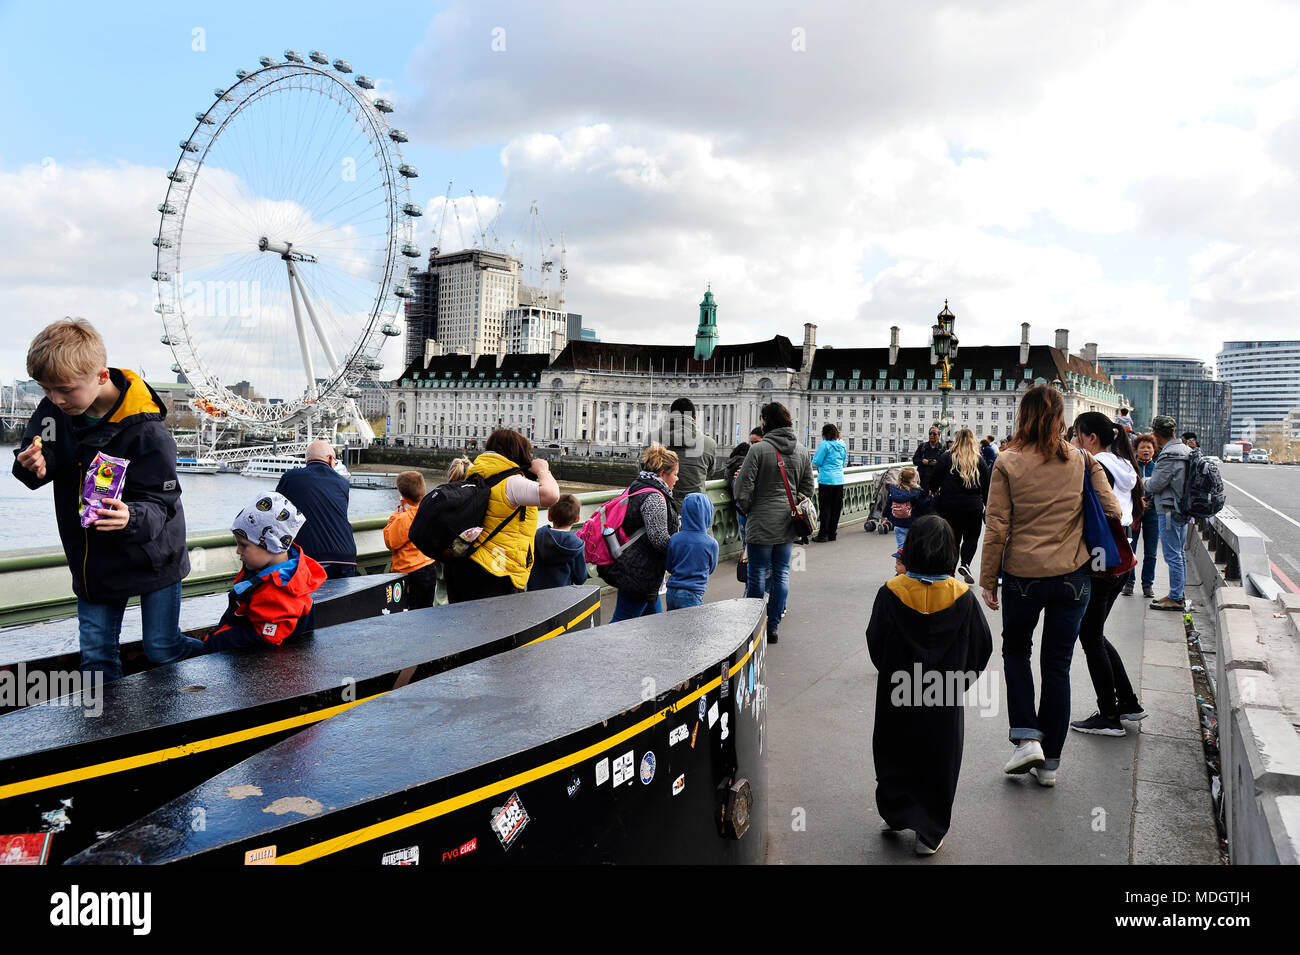 Security Bollards and London's Eye seen from Westminter Bridge - London - England - Stock Image